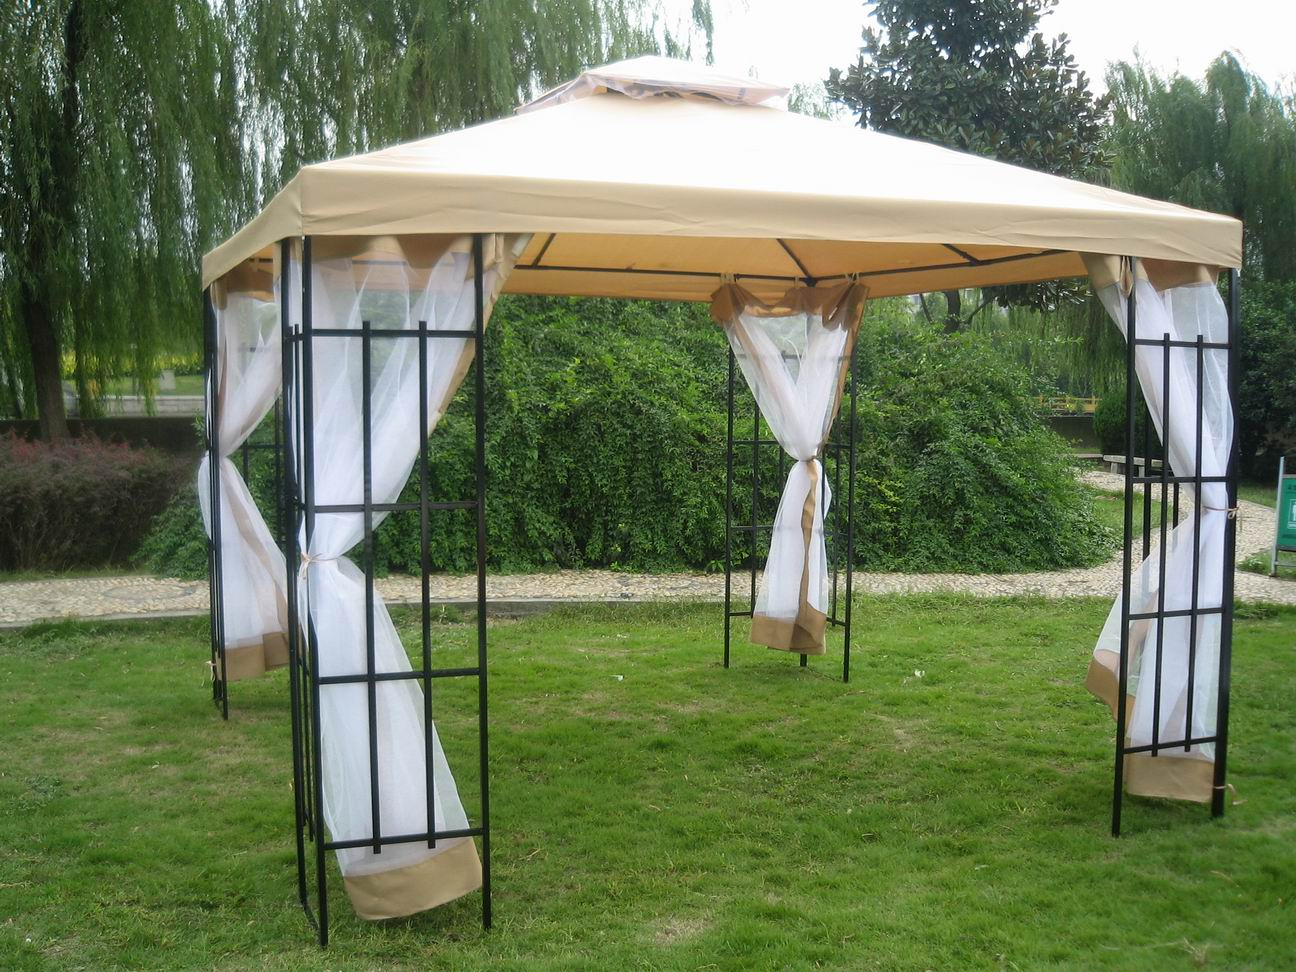 Backyard Gazebo Tent :  Patio Metal Gazebo Canopy Tent Pavilion Garden Outdoor Awning Marquee